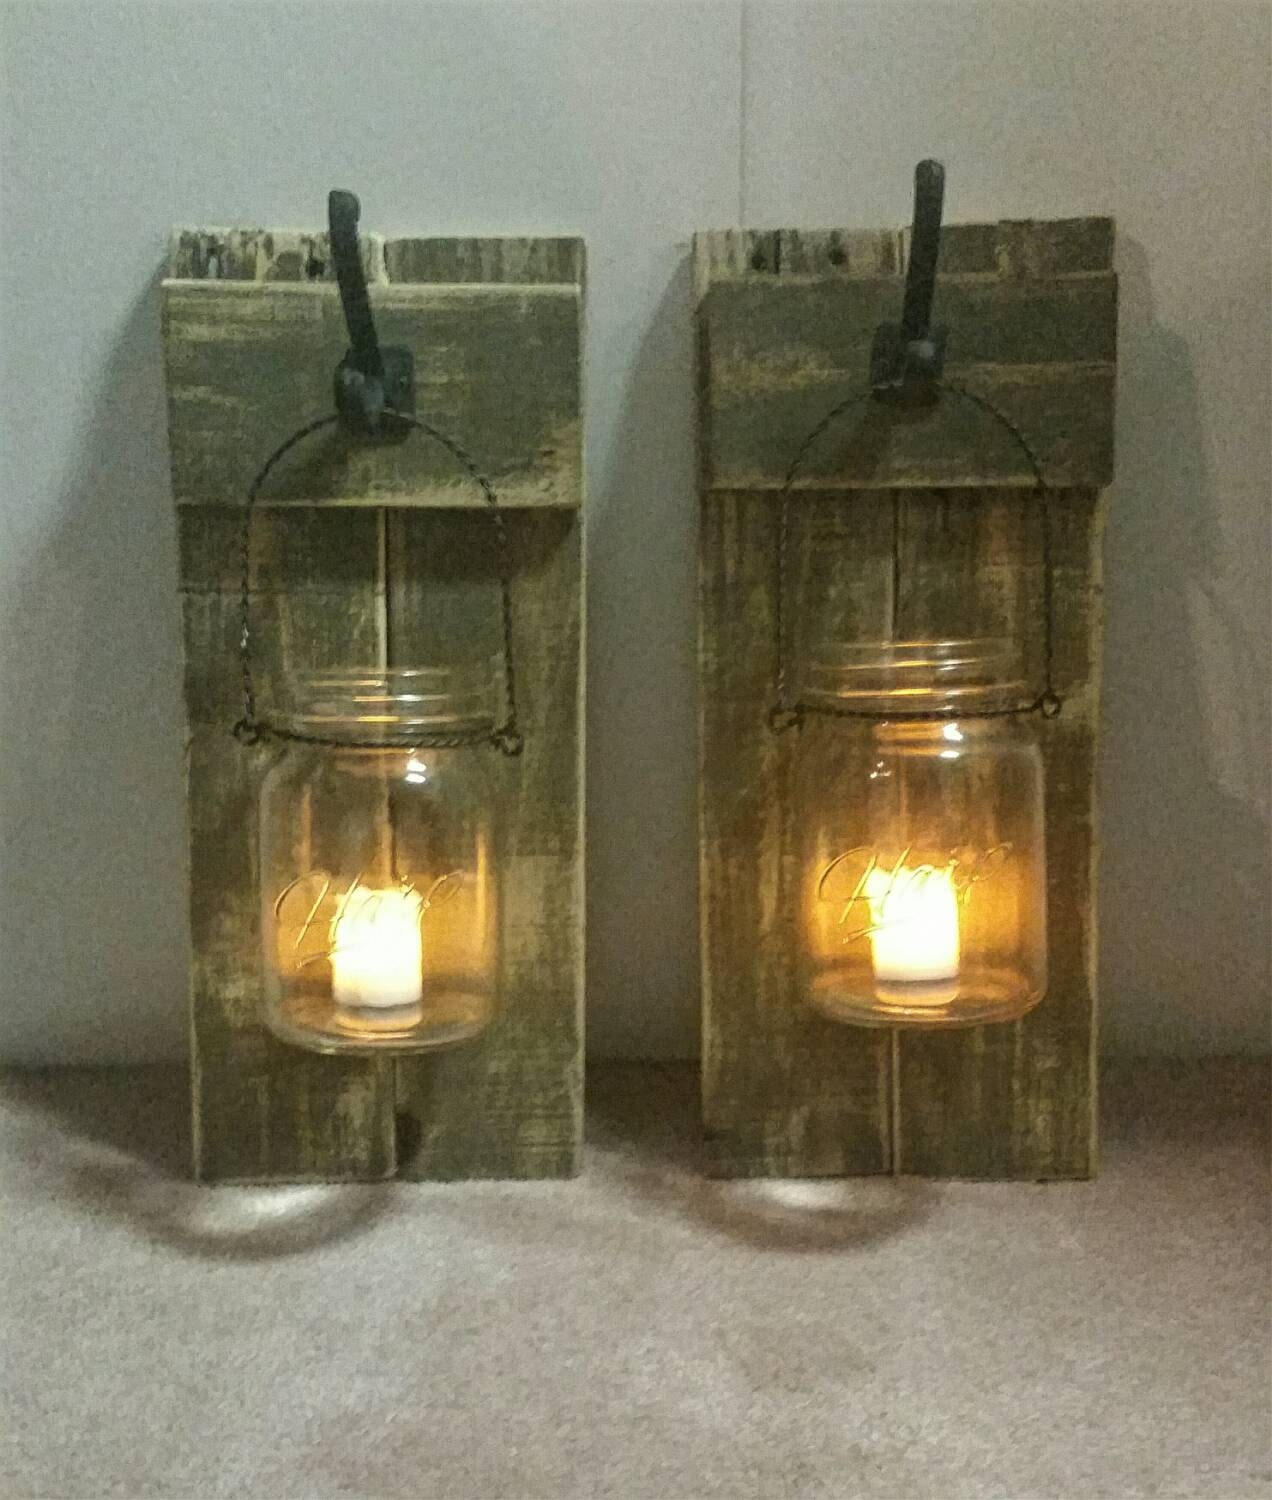 Mason Jar Wall Decor How To : Rustic wood mason jar wall decor with flameless candles